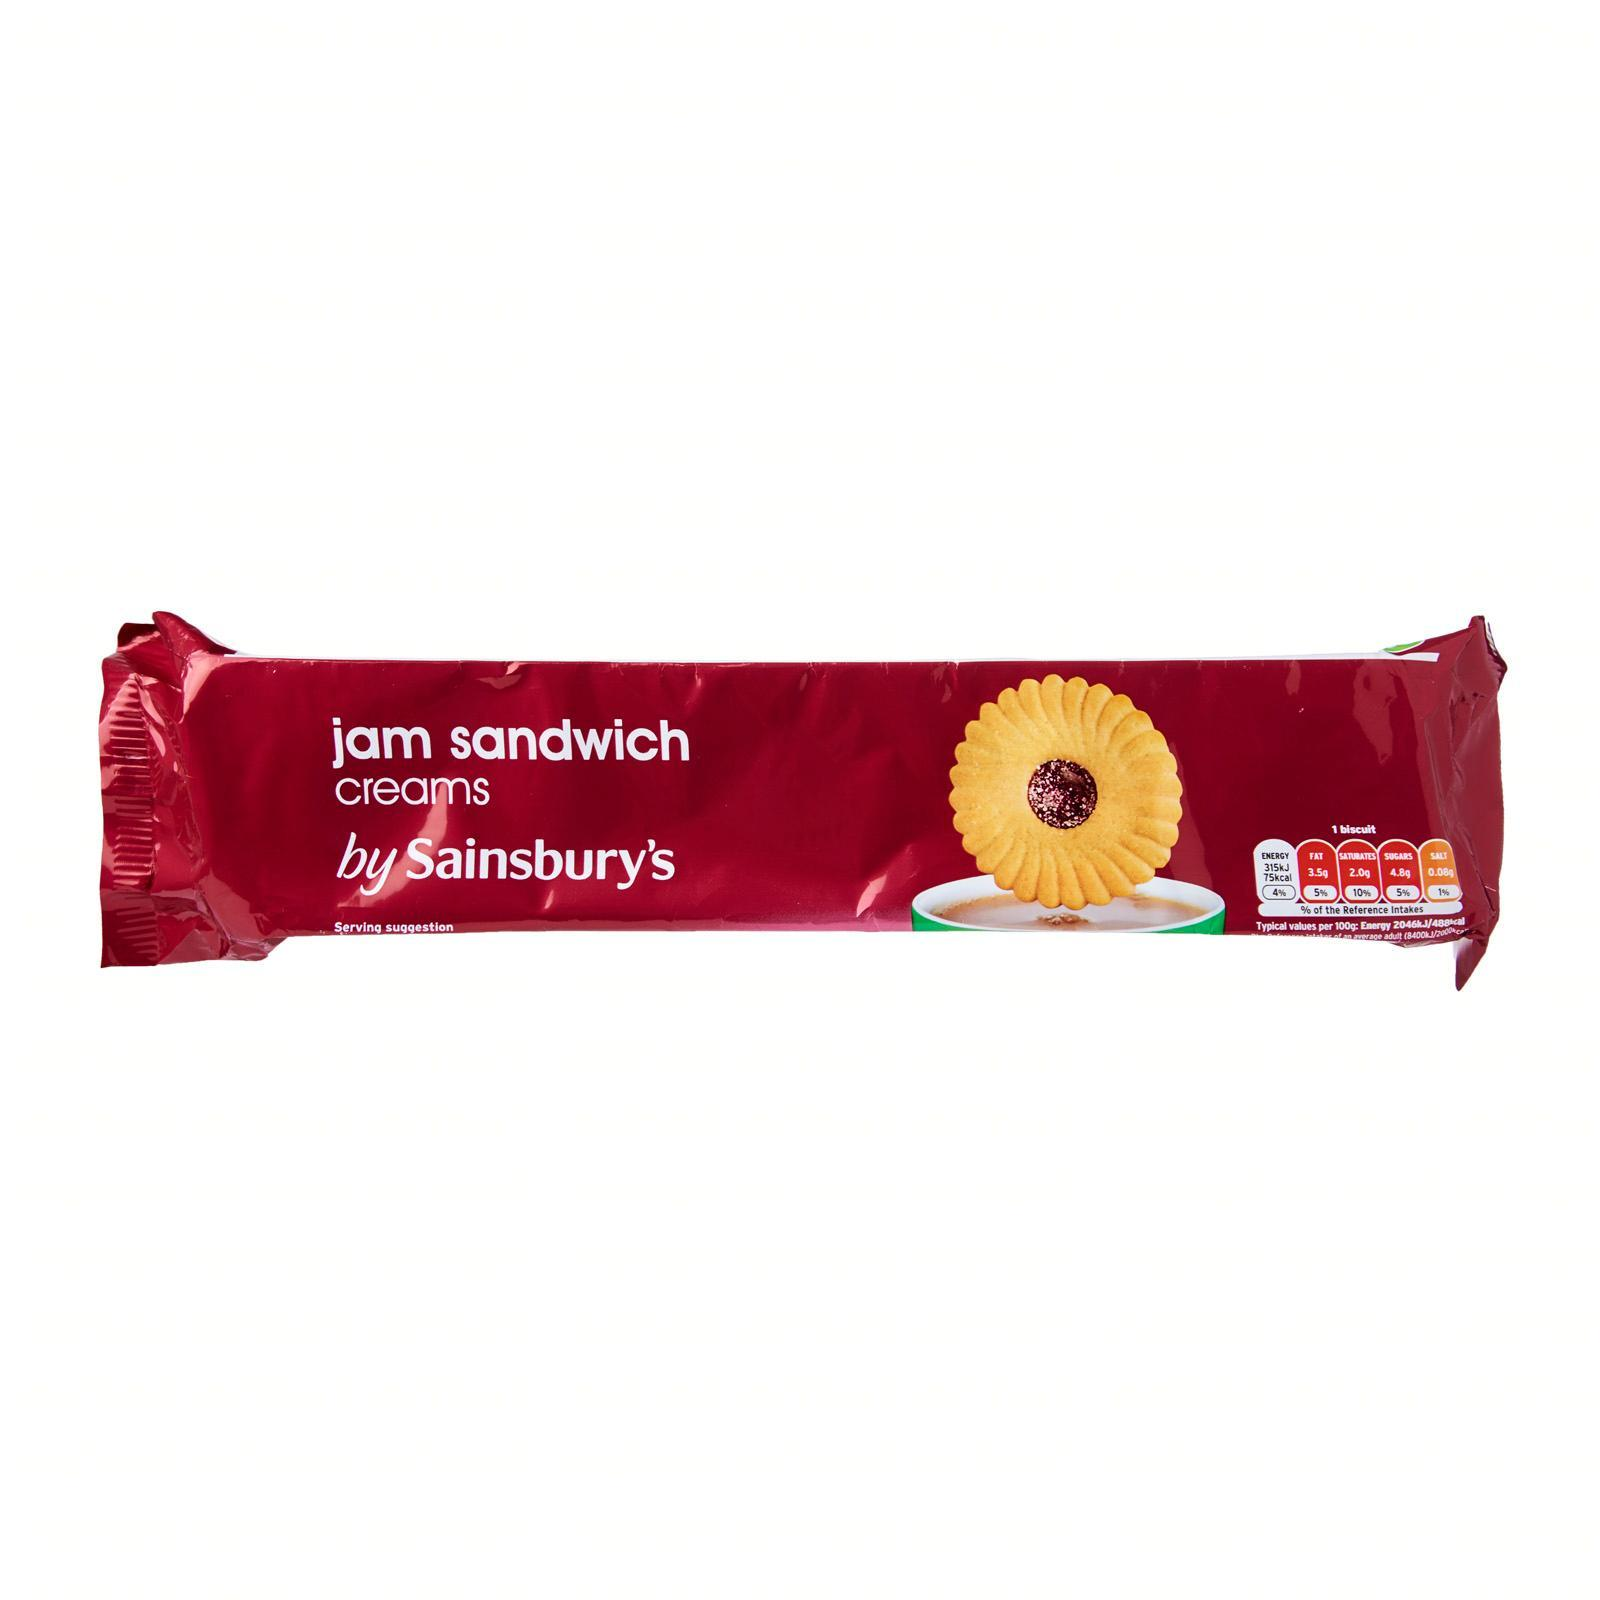 Sainsbury's Jam Sandwich Cream Biscuits